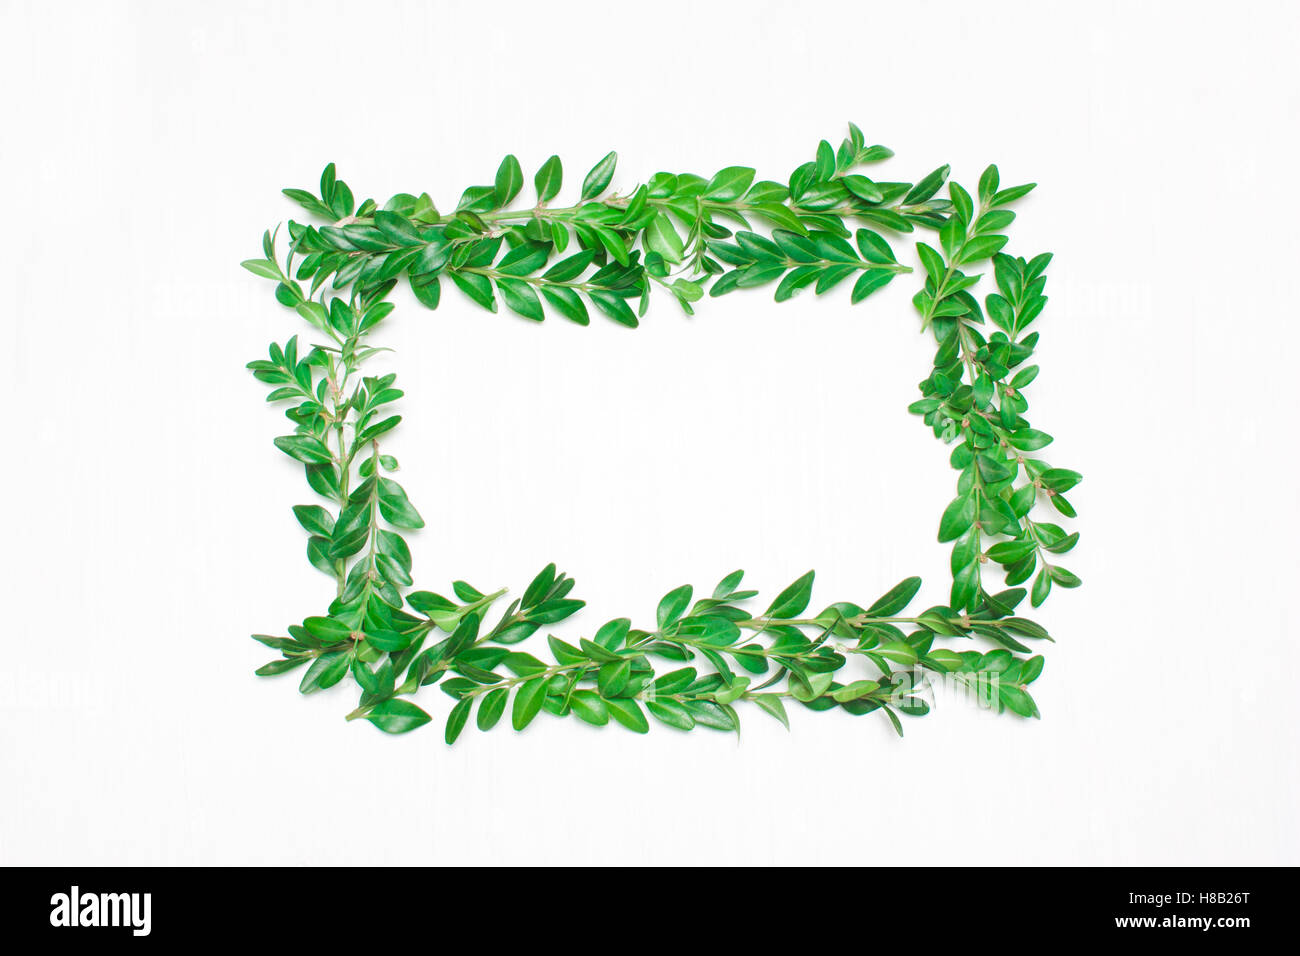 Frame of green leaves on a white background. View from above - Stock Image